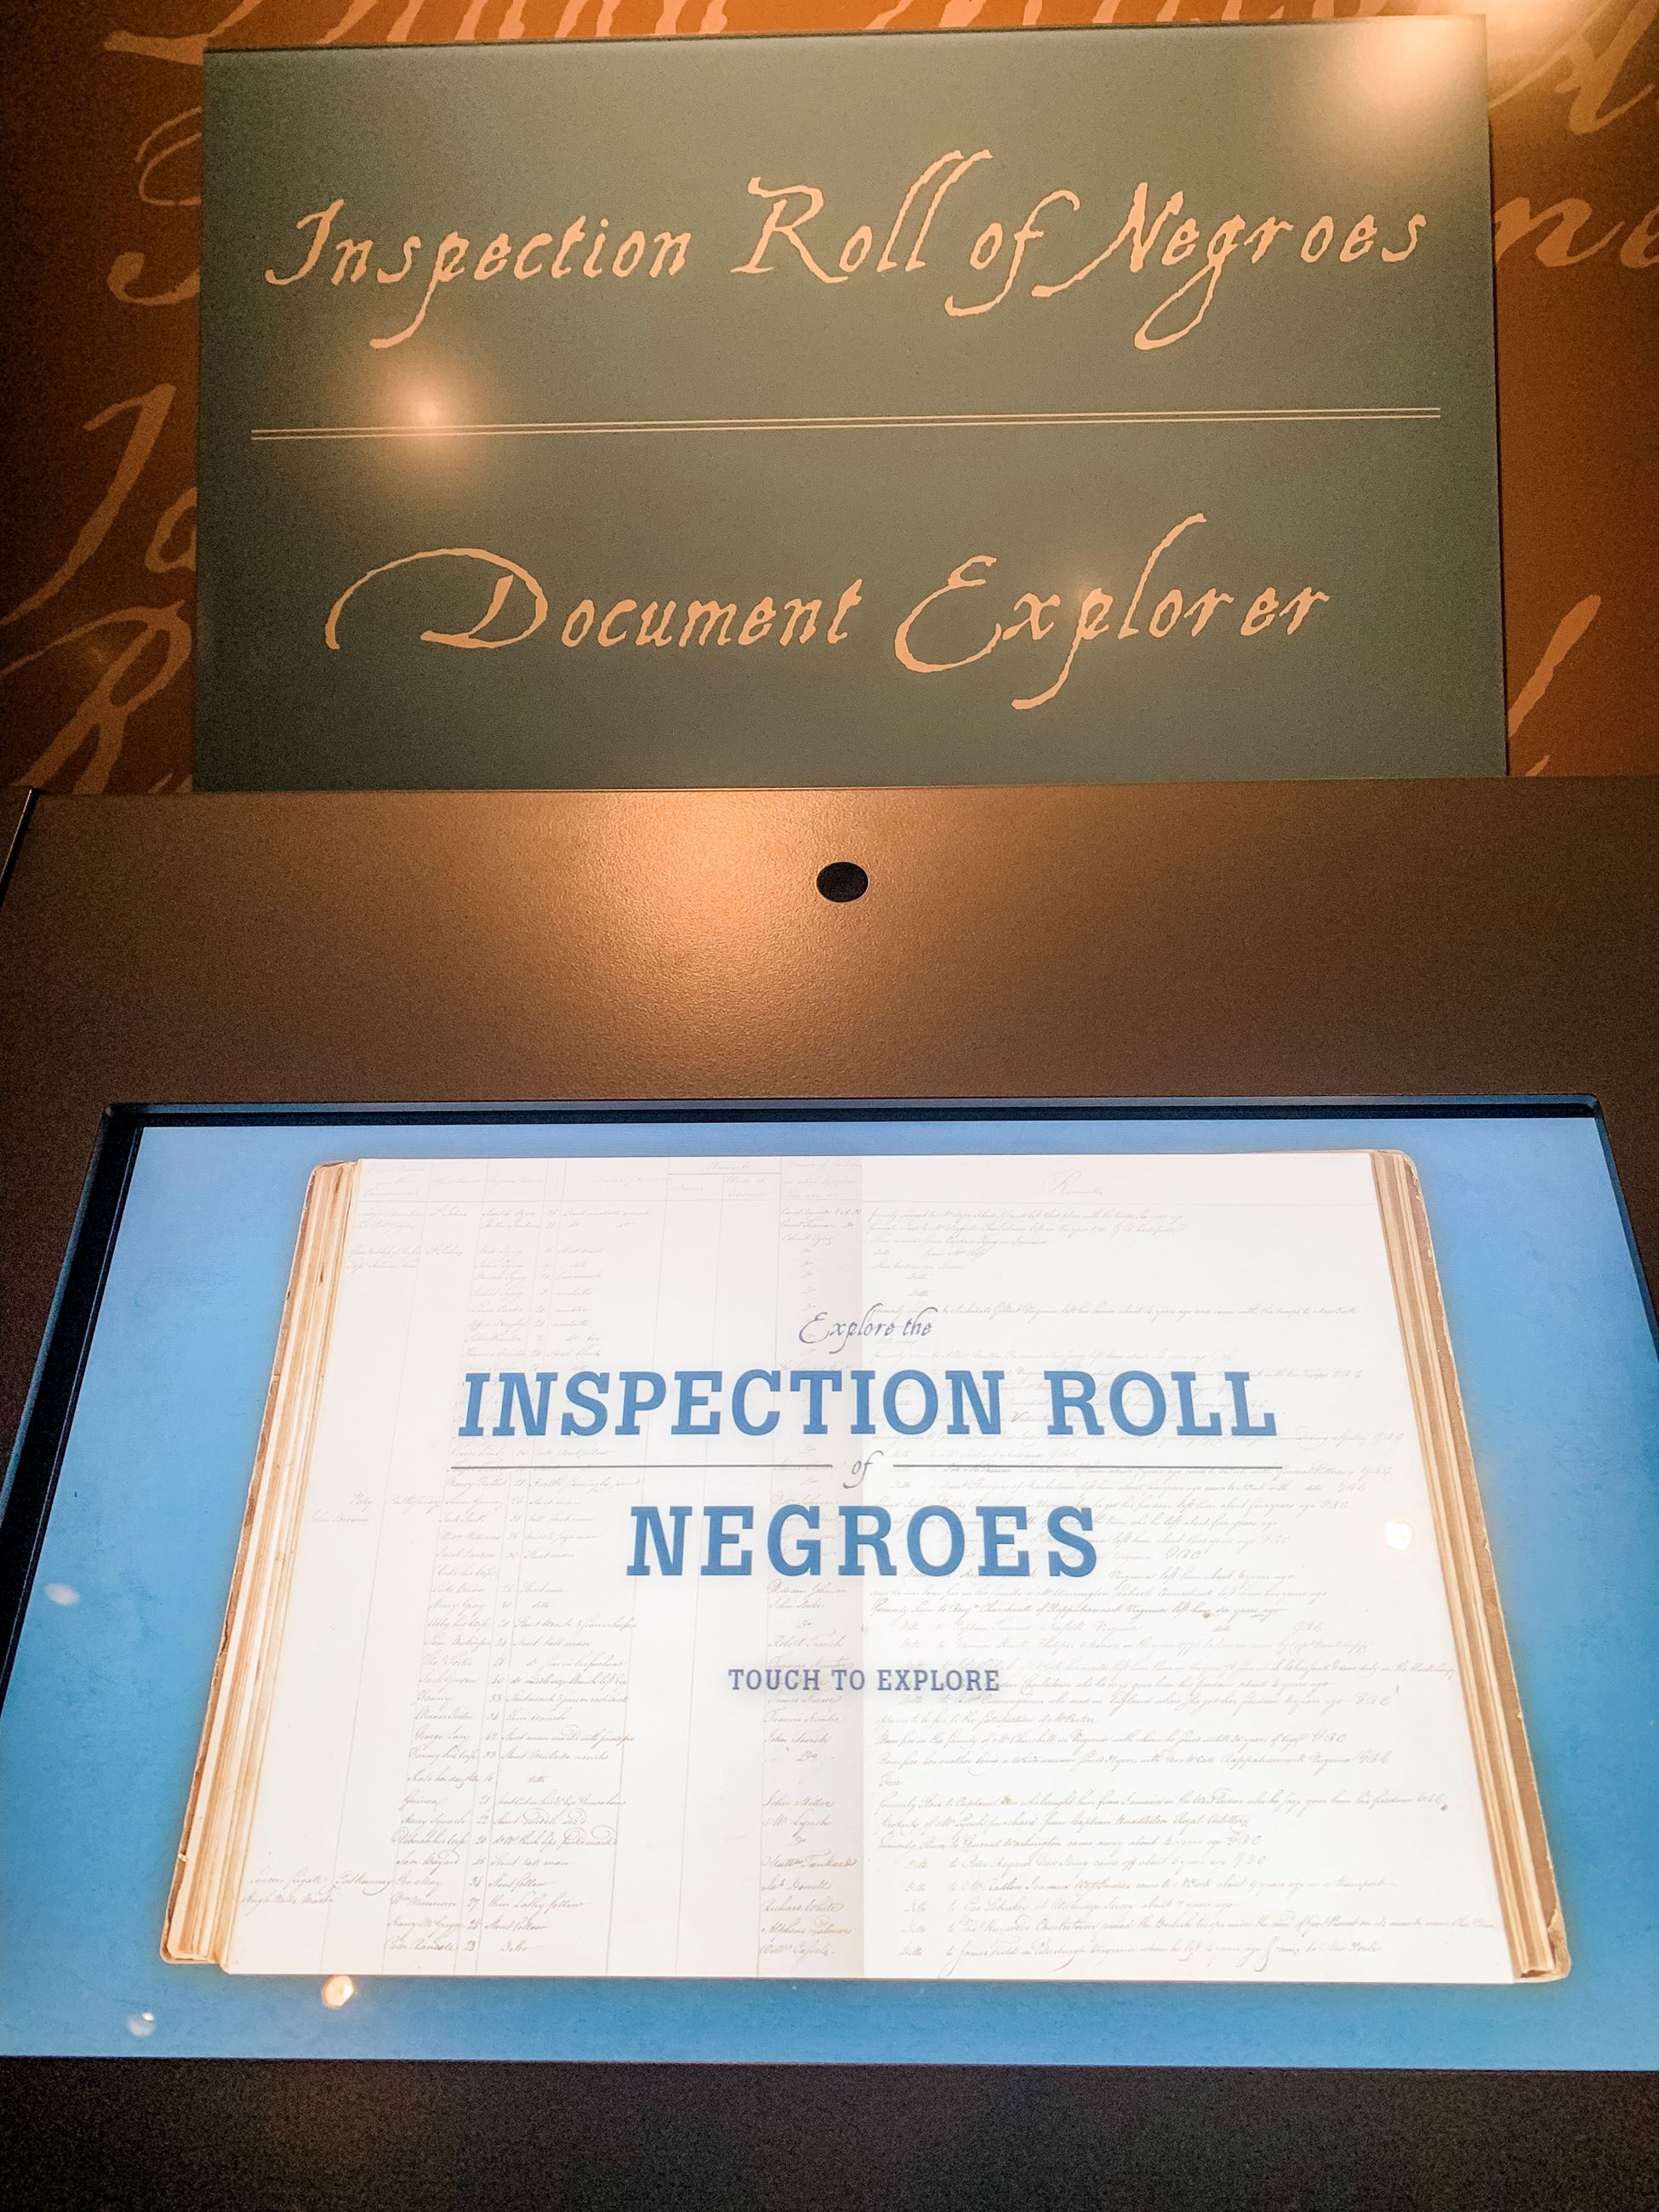 Interactive Exhibit of American and British Inspection Rolls